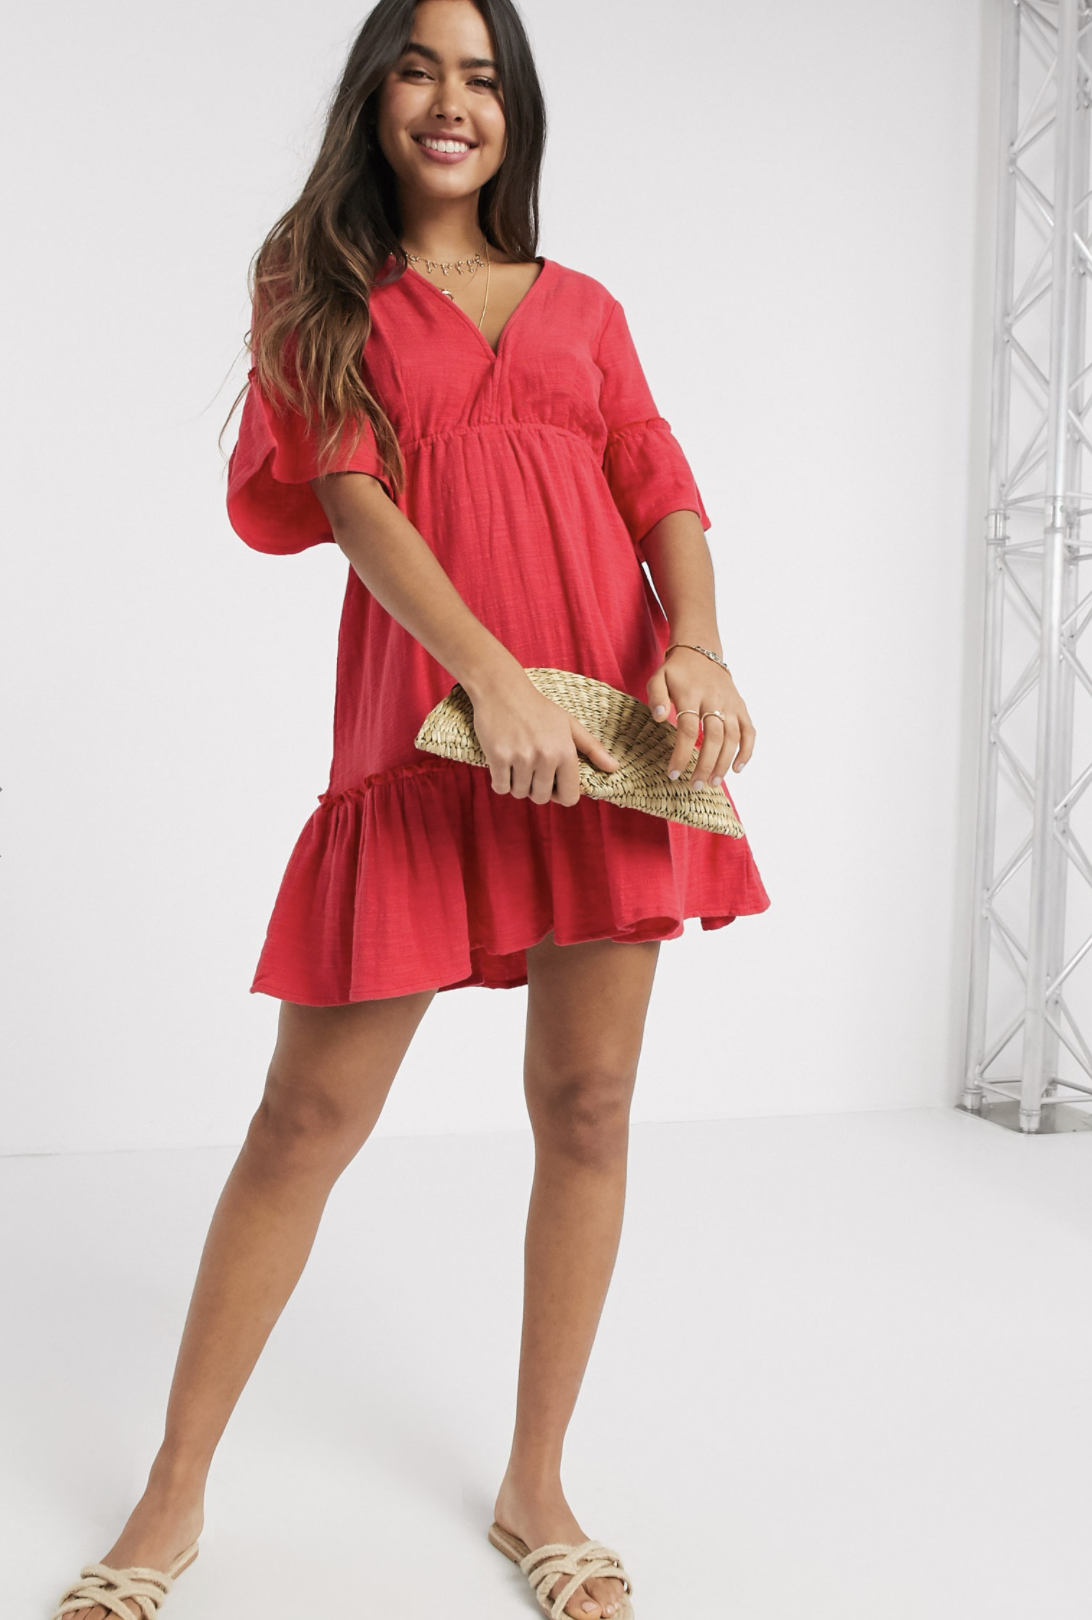 Vestido corto amplio en diseño escalonado rojo Lovers Wish de Billabong X Sincerely Jules